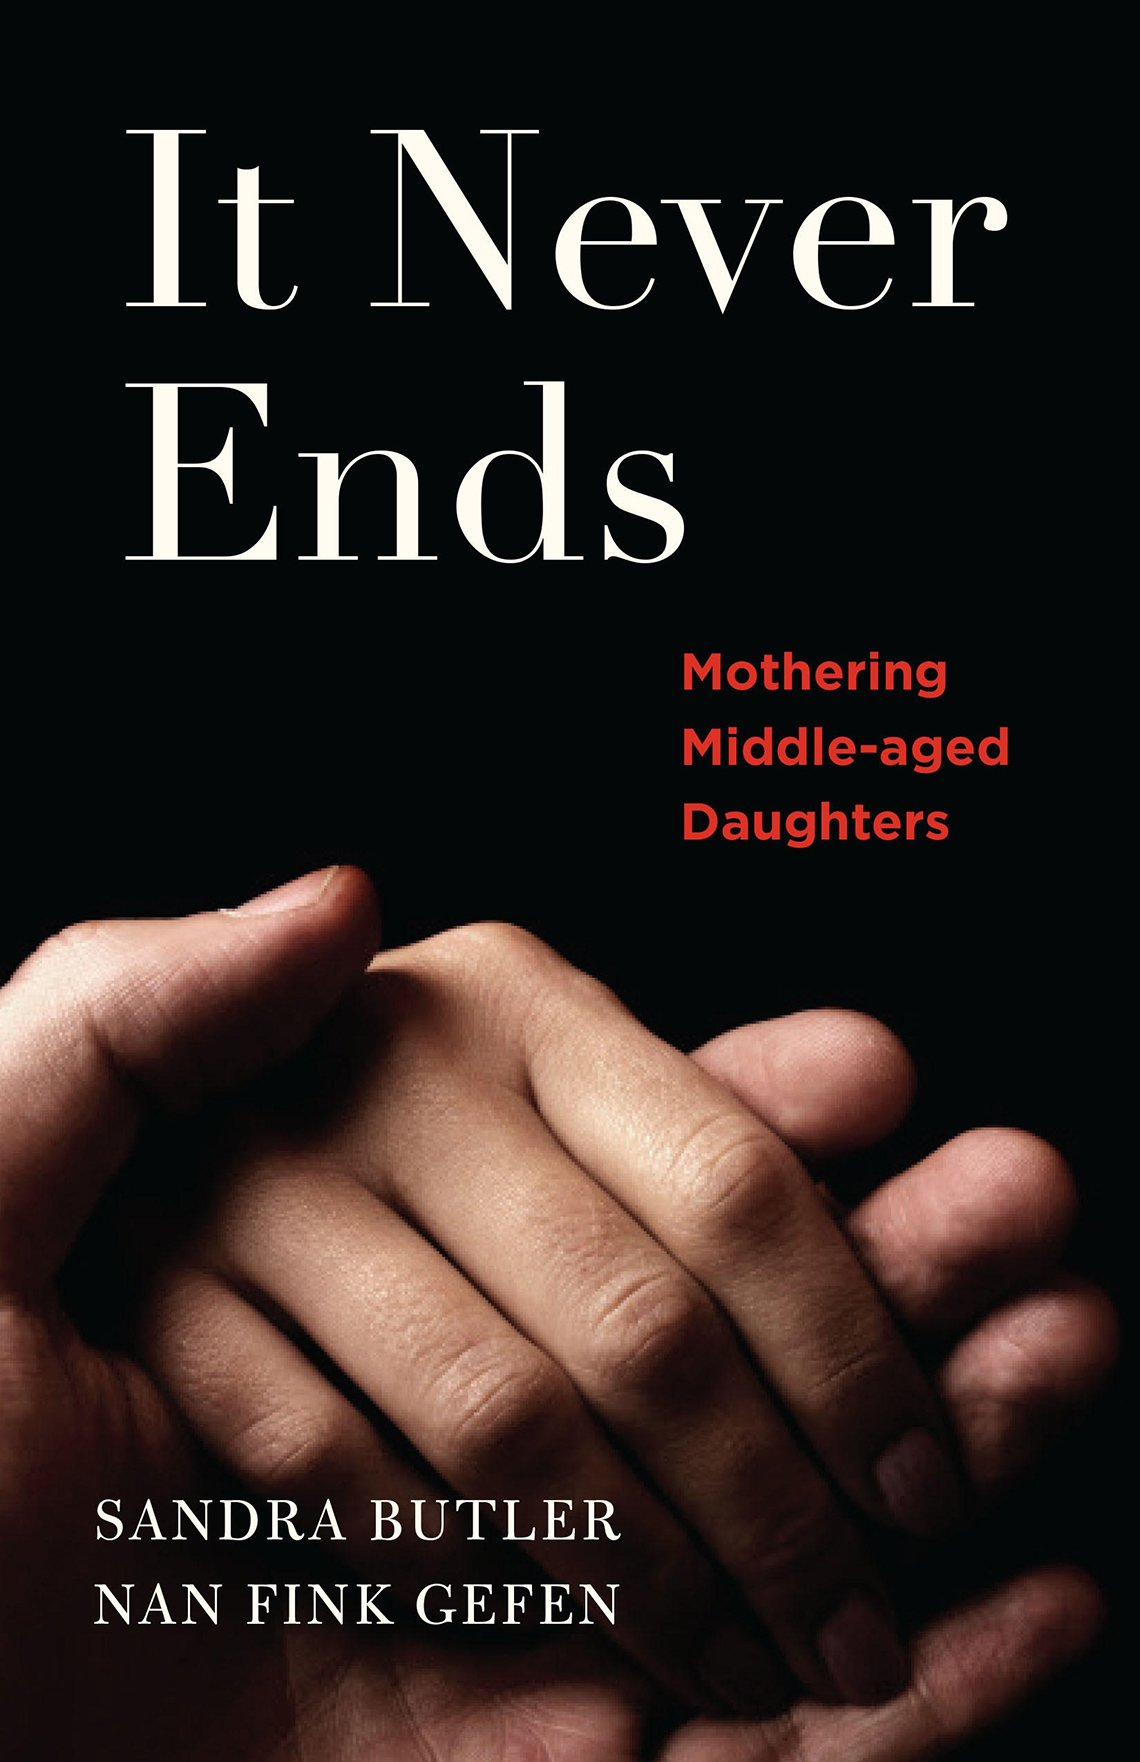 'It Never Ends: Mothering Middle-aged Daughters', by Sandra Butler and Nan Fink Gefen